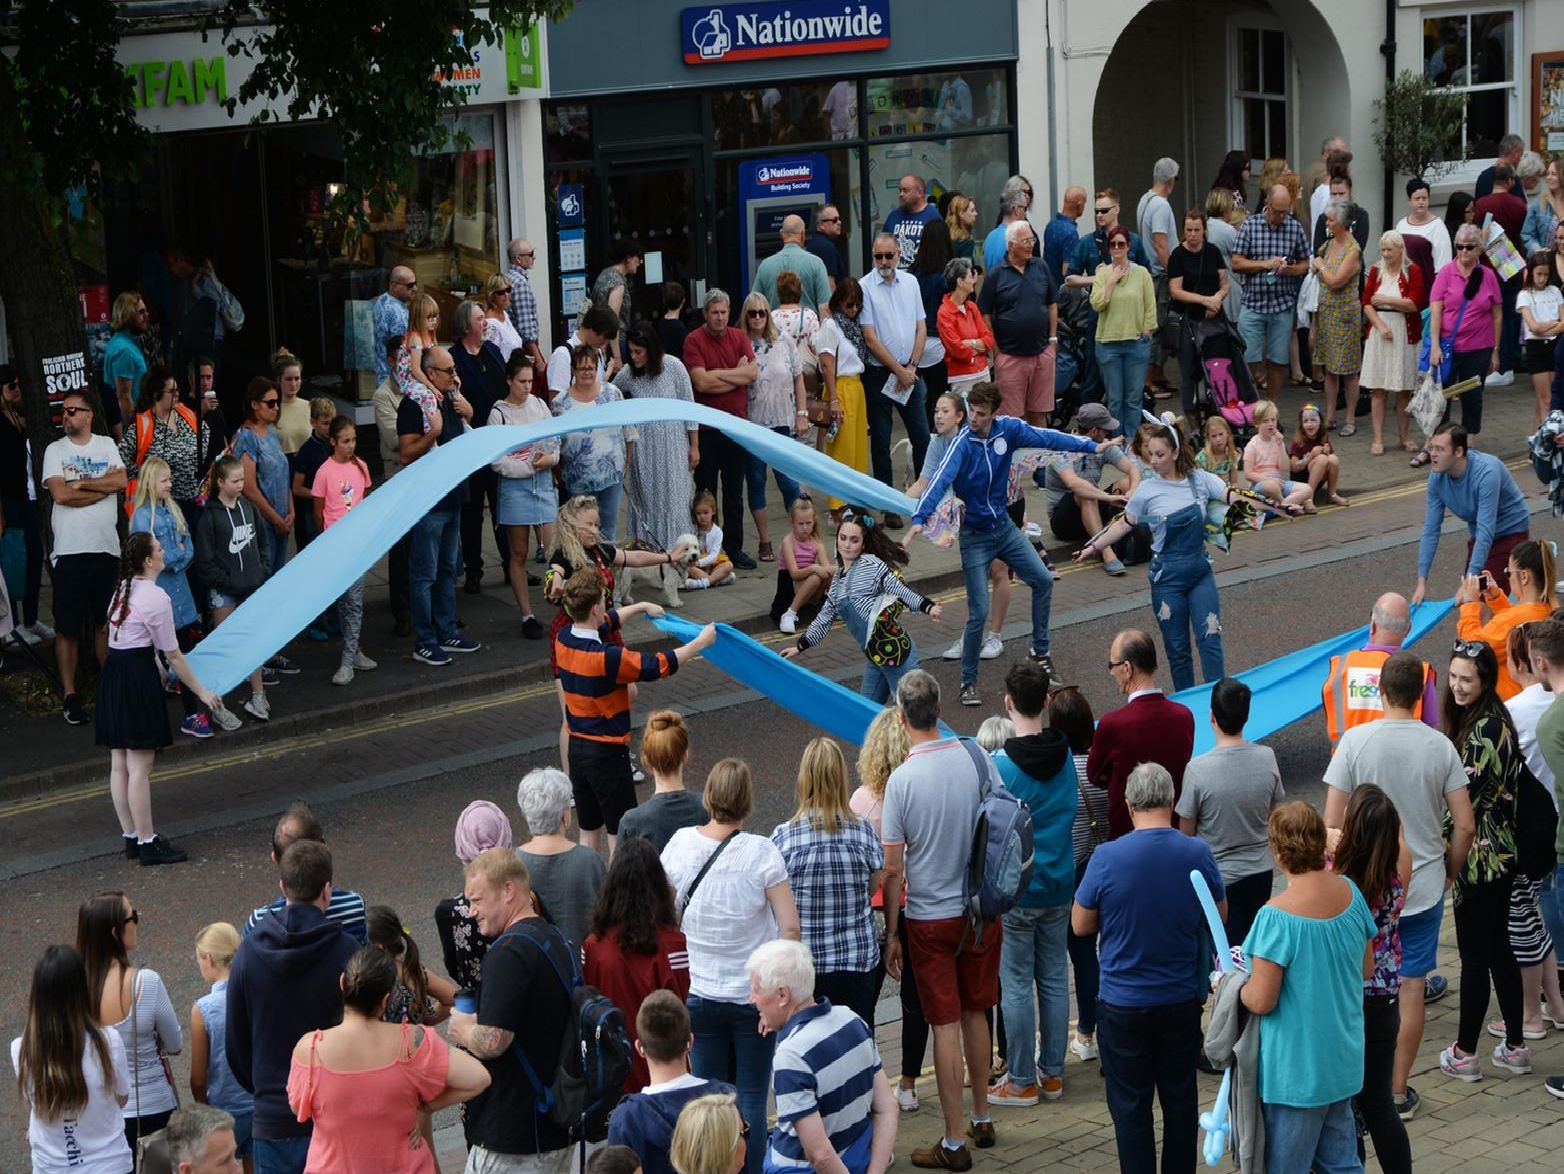 Busy scenes during the Arts Fresco event. PICTURE: ANDREW CARPENTER